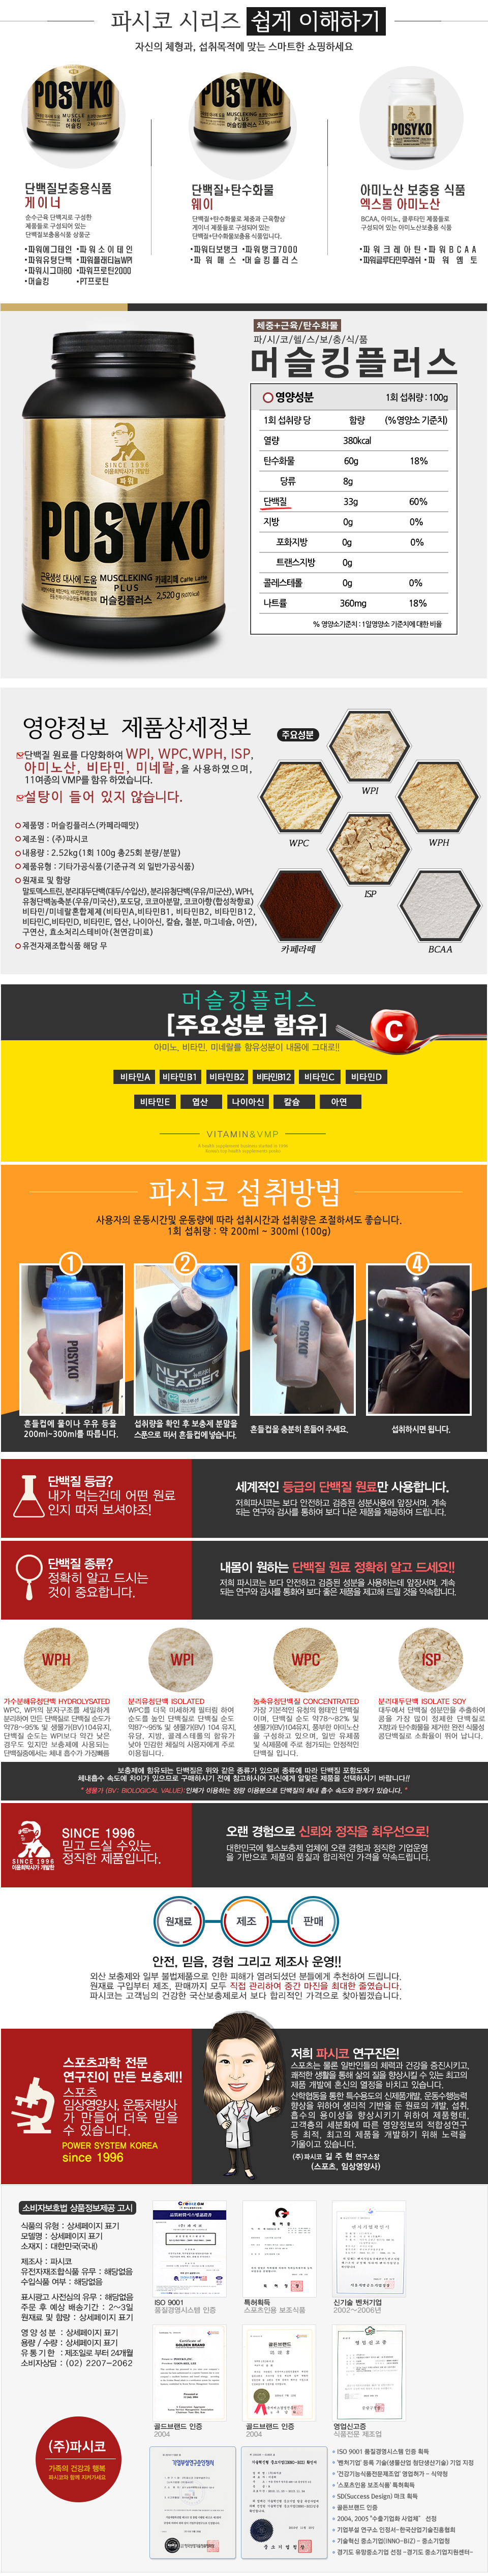 [ etc ] Muscleking Plus Cookietaste 2.52Kg (Weight Training) Protein Supplement/Health Supplement/Shaker Included